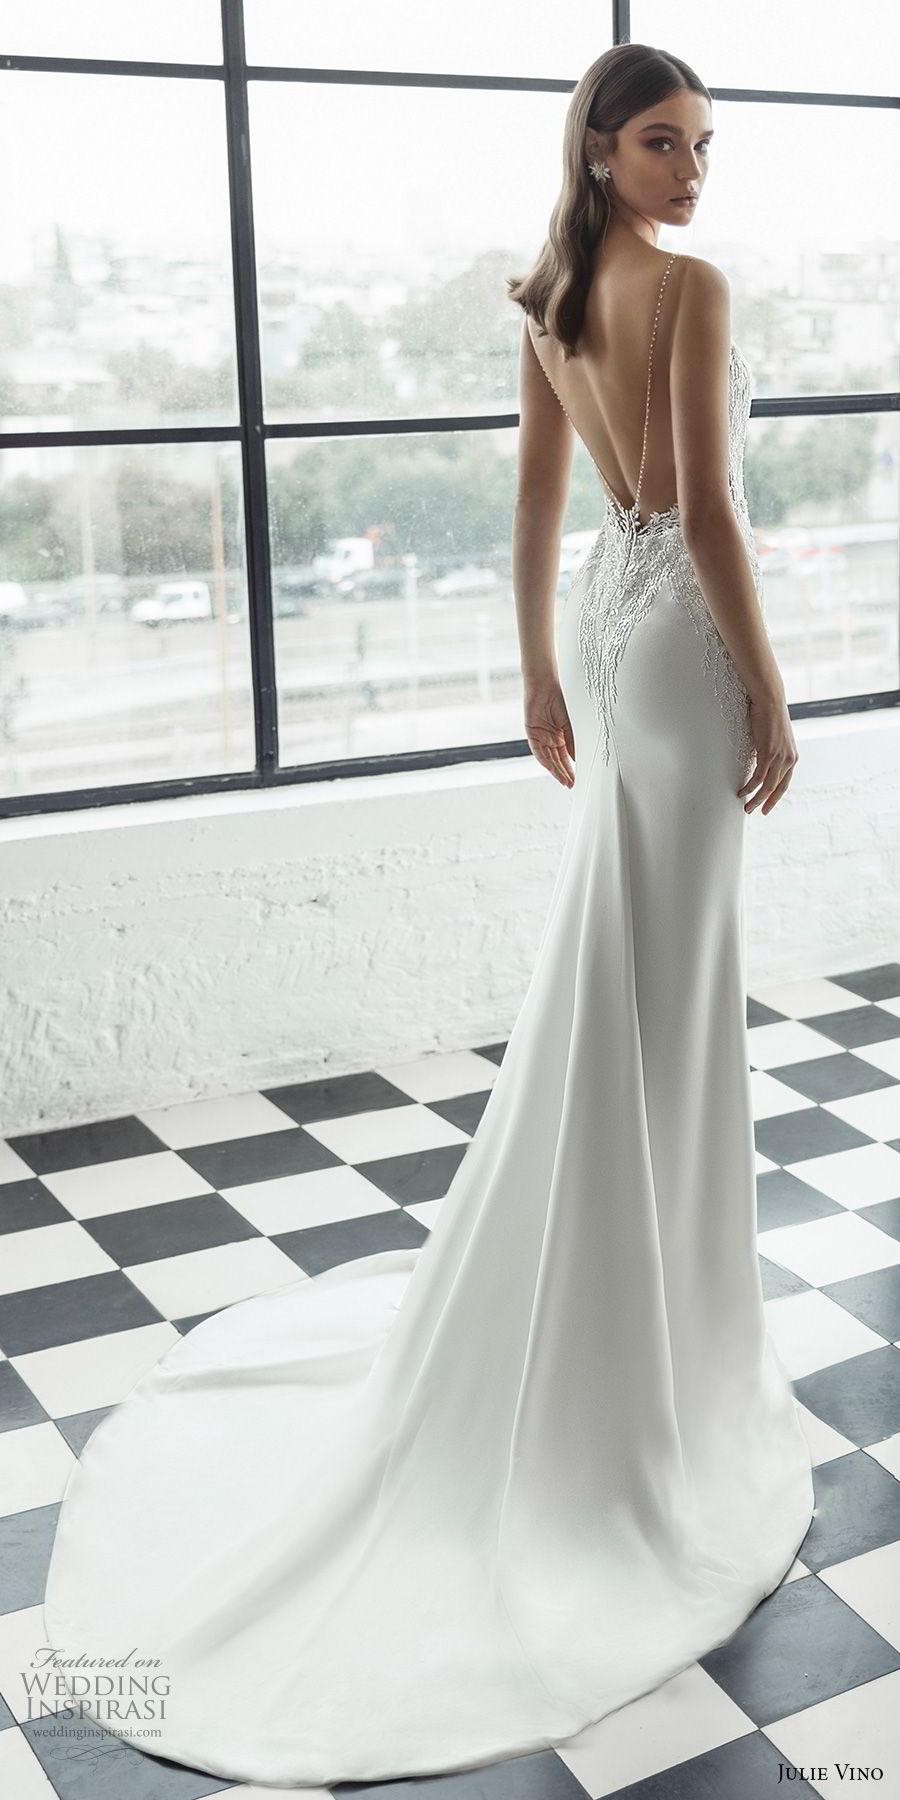 julie vino 2019 romanzo bridal sleeveless deep plunging sweetheart neckline heavily embellished bodice romantic fit and flare wedding dress low v back chapel train (8) bv